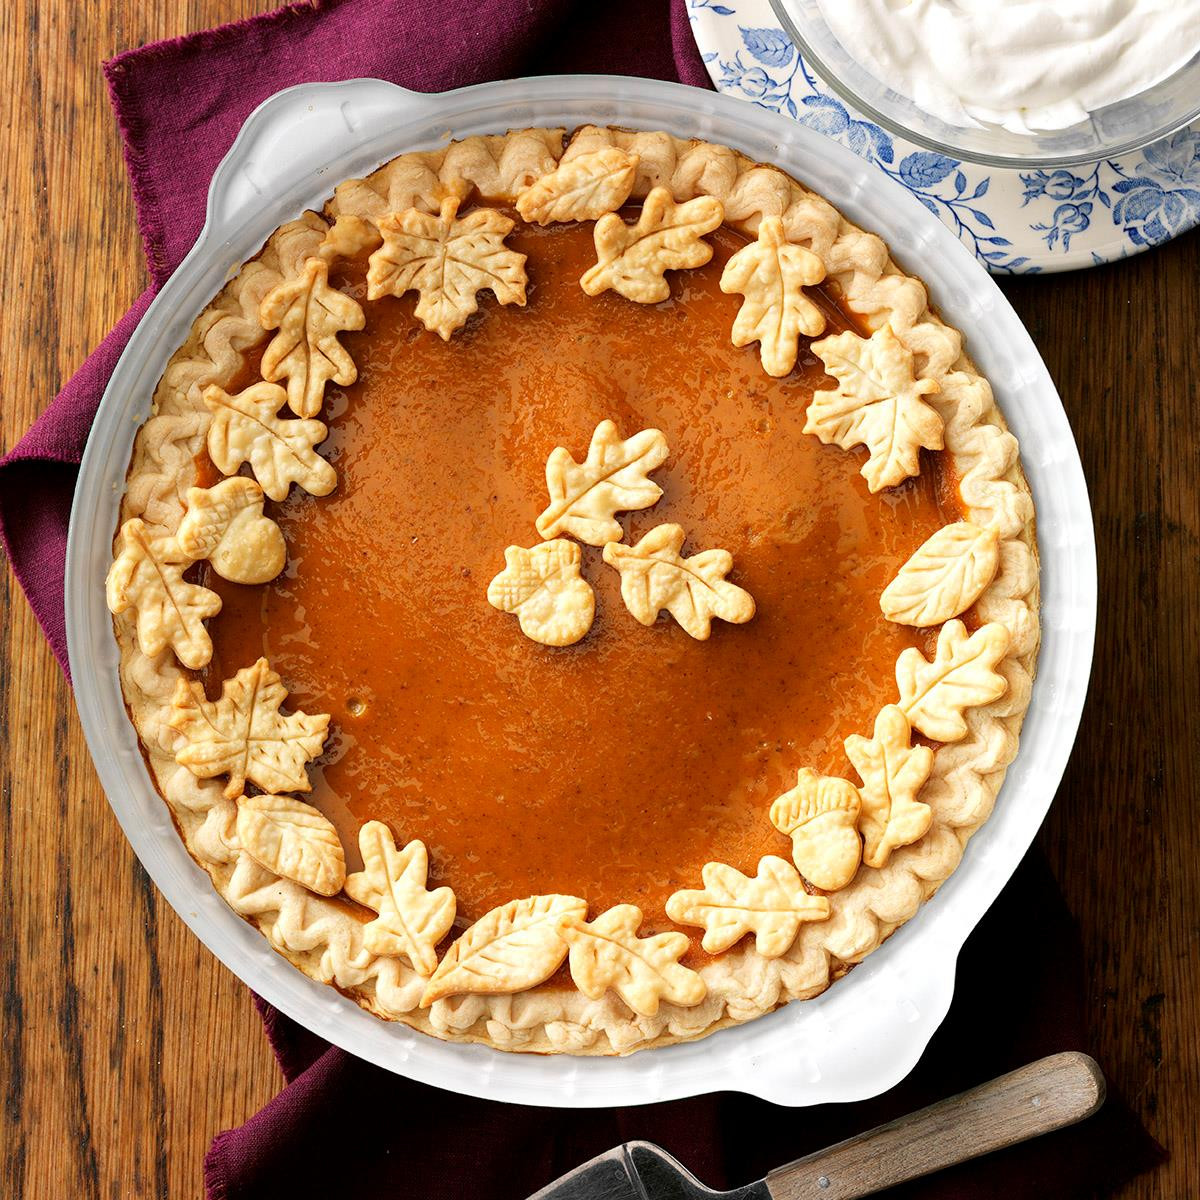 Thanksgiving Pumpkin Pie Recipe  25 Pumpkin Pie Recipes to Try This Year